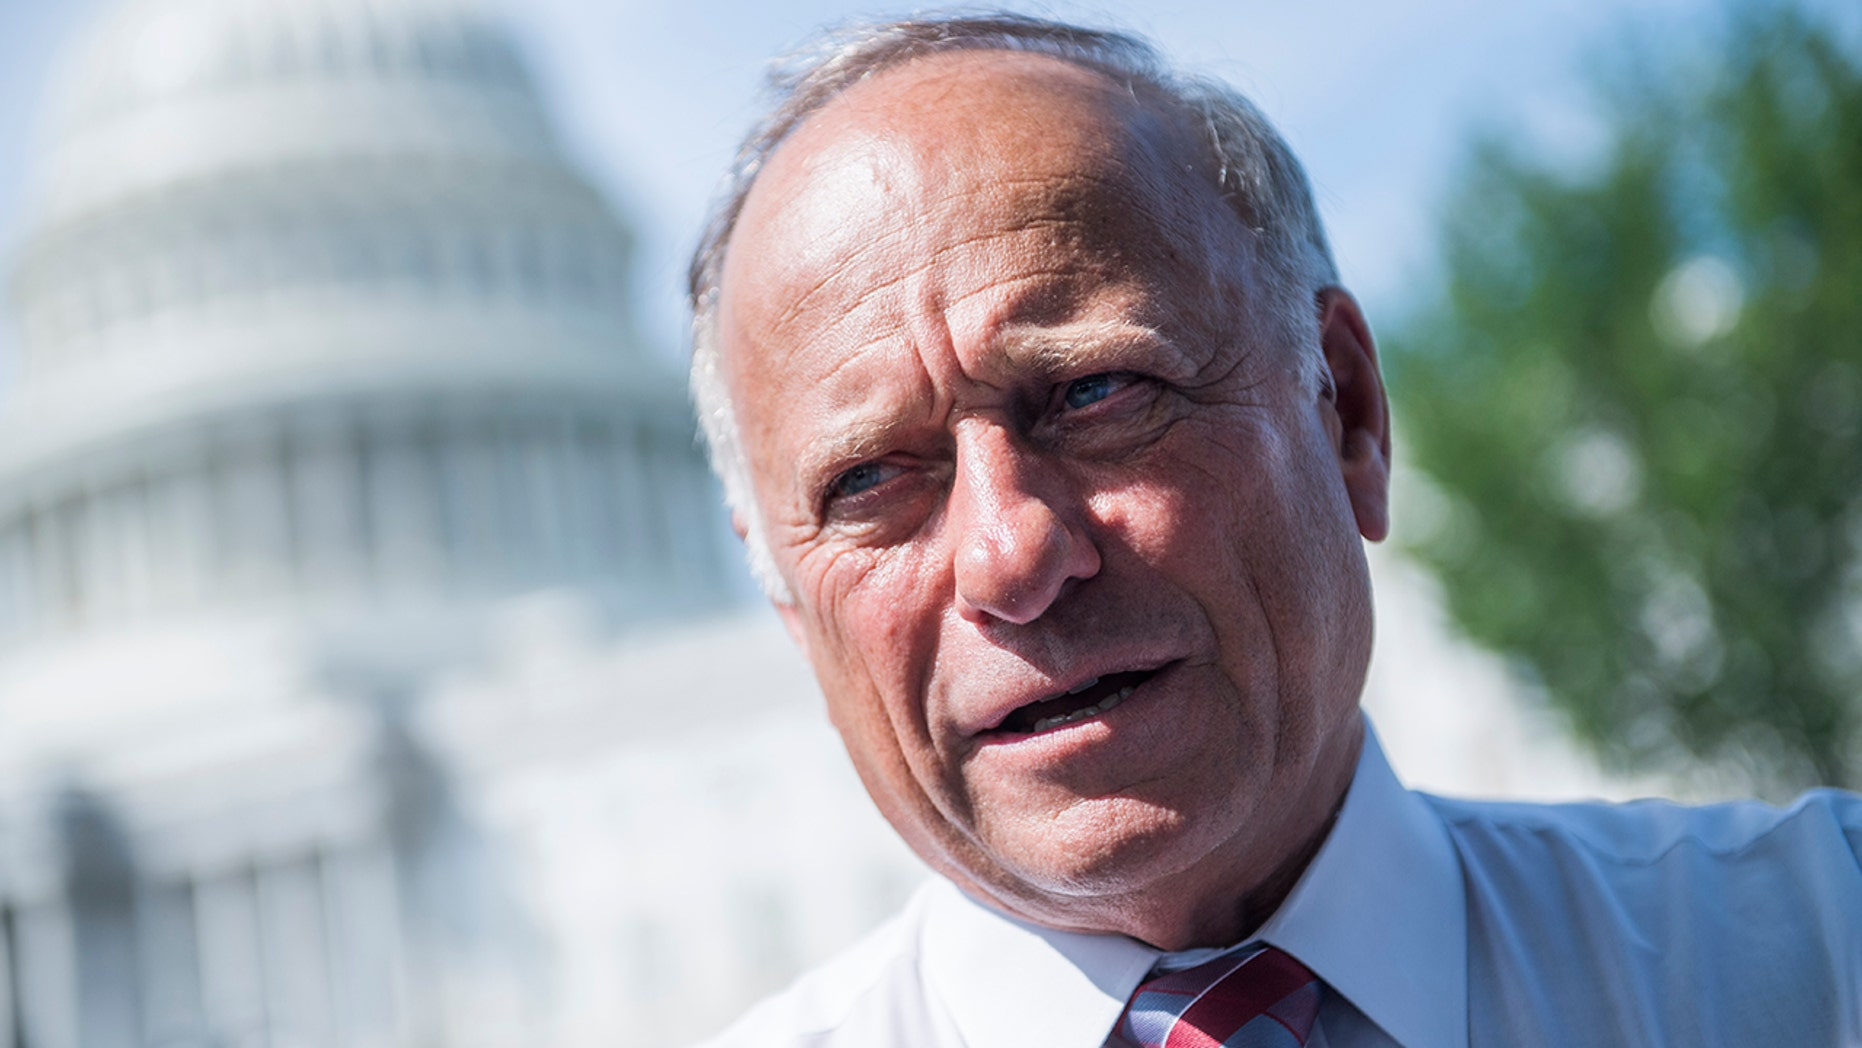 Rep. Steve King, R-Iowa, attends a rally with Angel Families on the East Front of the Capitol to highlight crimes committed by undocumented immigrants in the U.S., on September 7, 2018. (Photo By Tom Williams/CQ Roll Call)